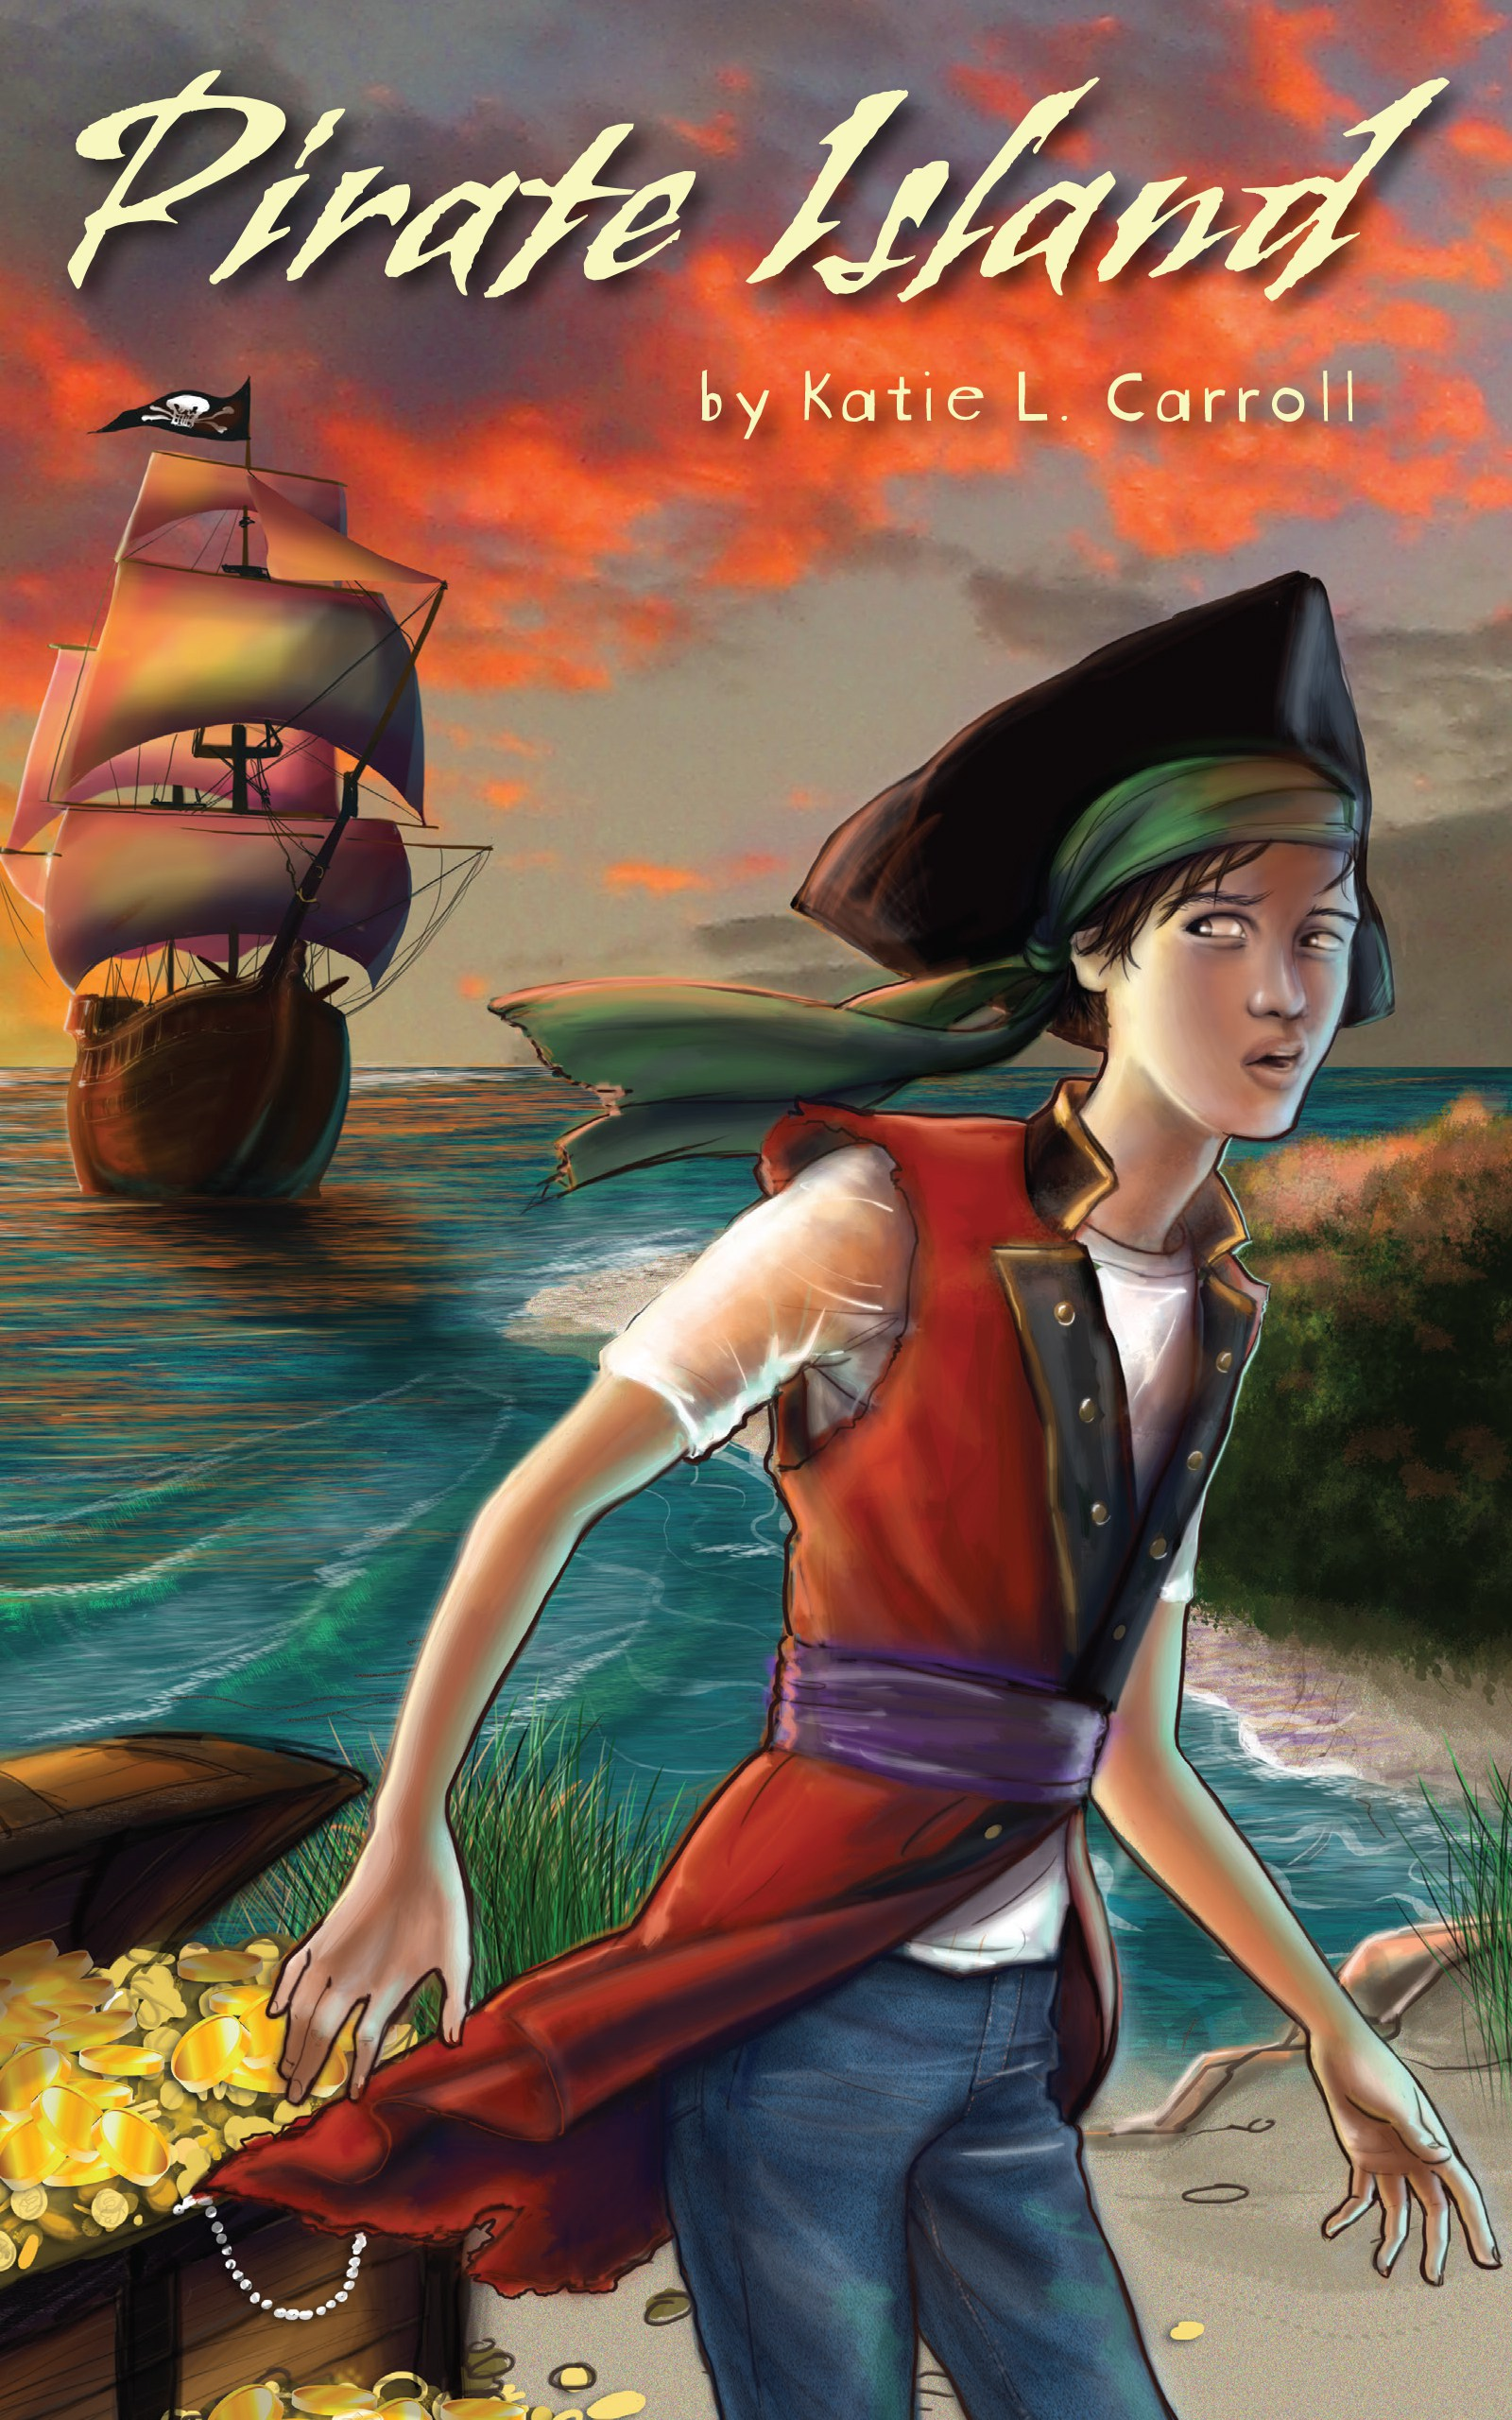 PirateIslandCover4Ebook